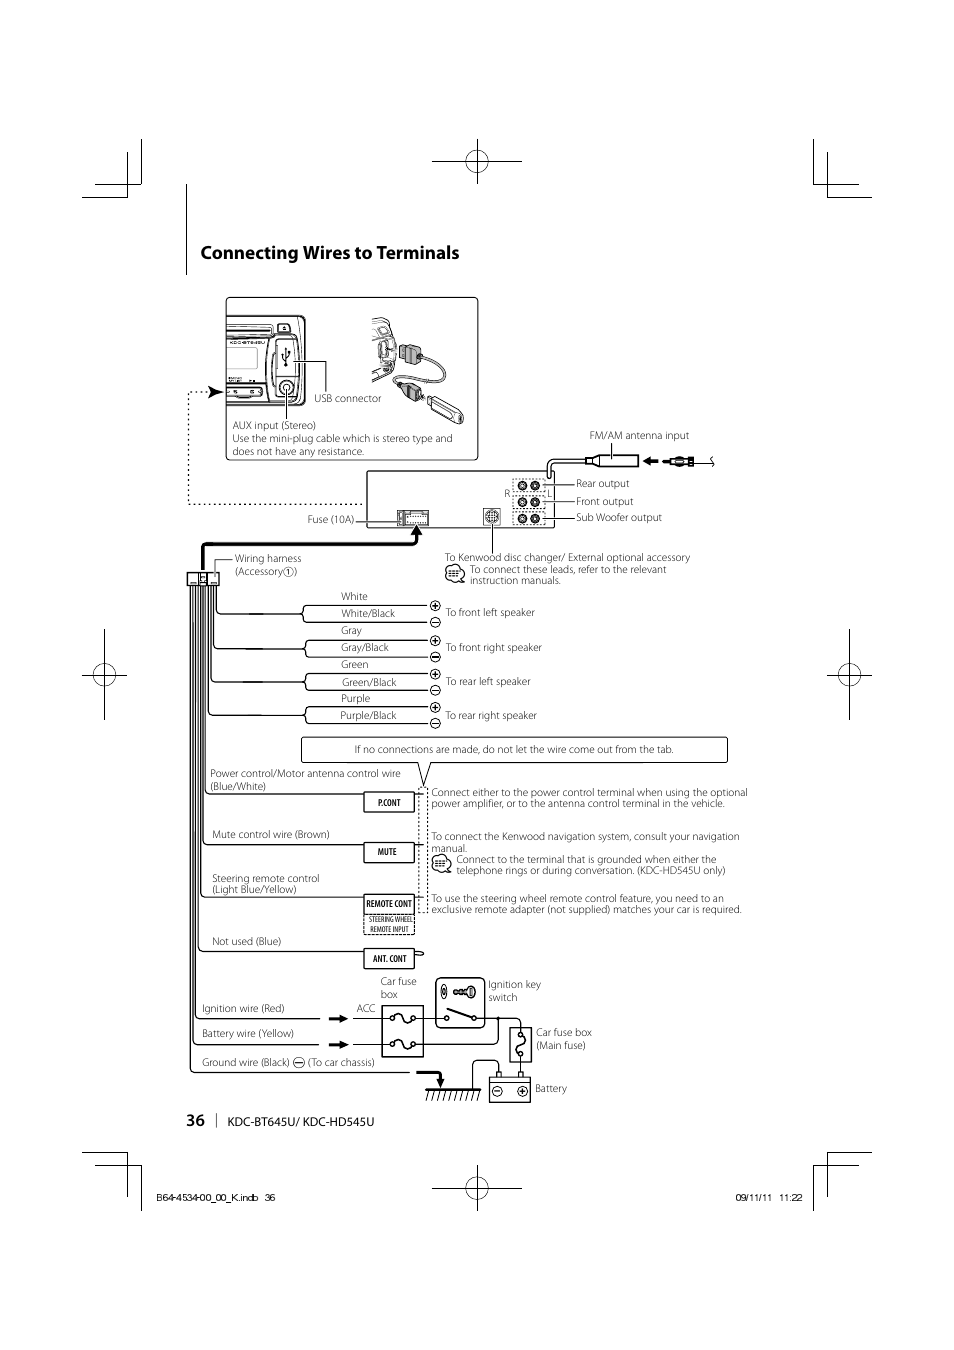 Kenwood Kdc 348U Wiring Diagram from www.manualsdir.com